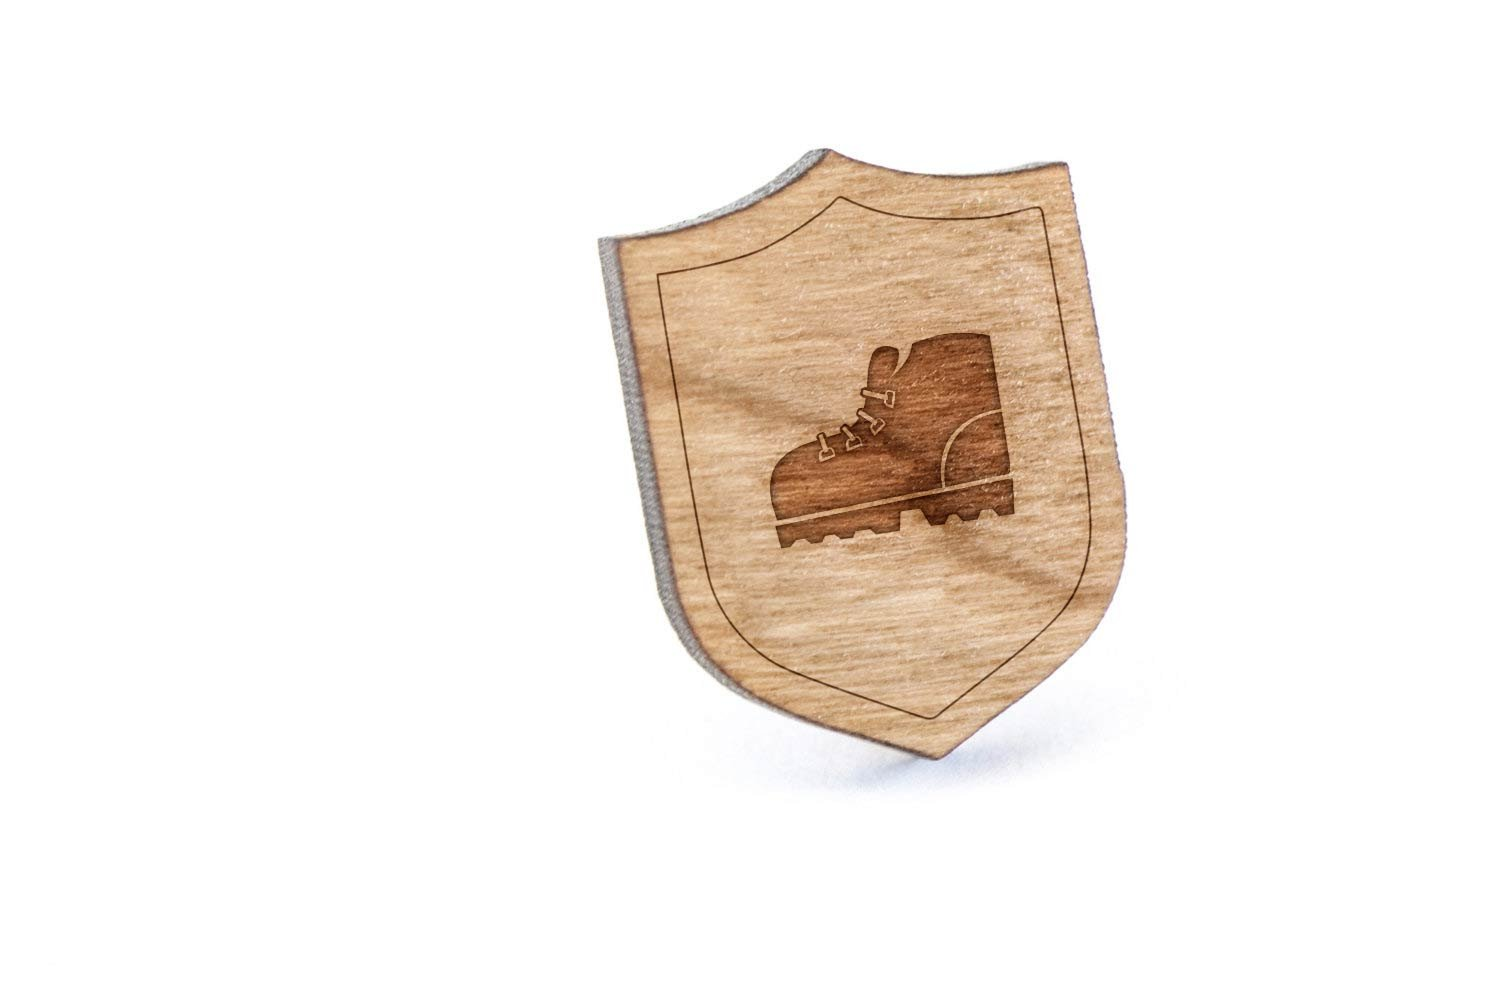 Hiking Boot Lapel Pin, Wooden Pin And Tie Tack   Rustic And Minimalistic Groomsmen Gifts And Wedding Accessories